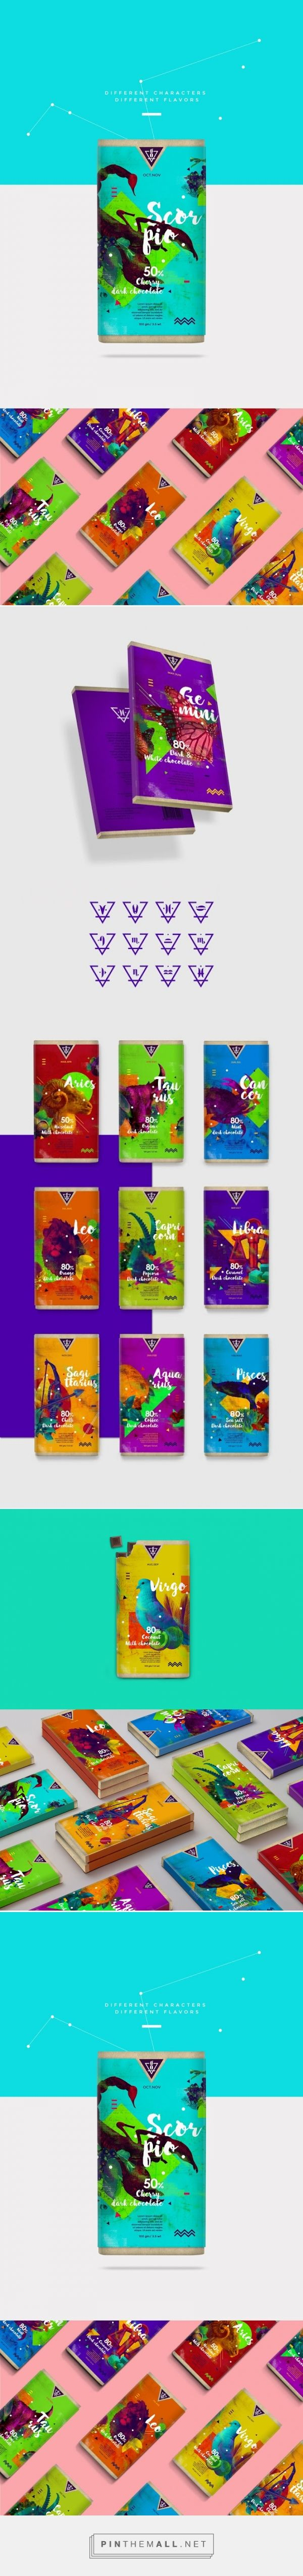 Eight Chocolate (Concept) - Packaging of the World - Creative Package Design Gallery - http://www.packagingoftheworld.com/2017/04/eight-chocolate-concept.html